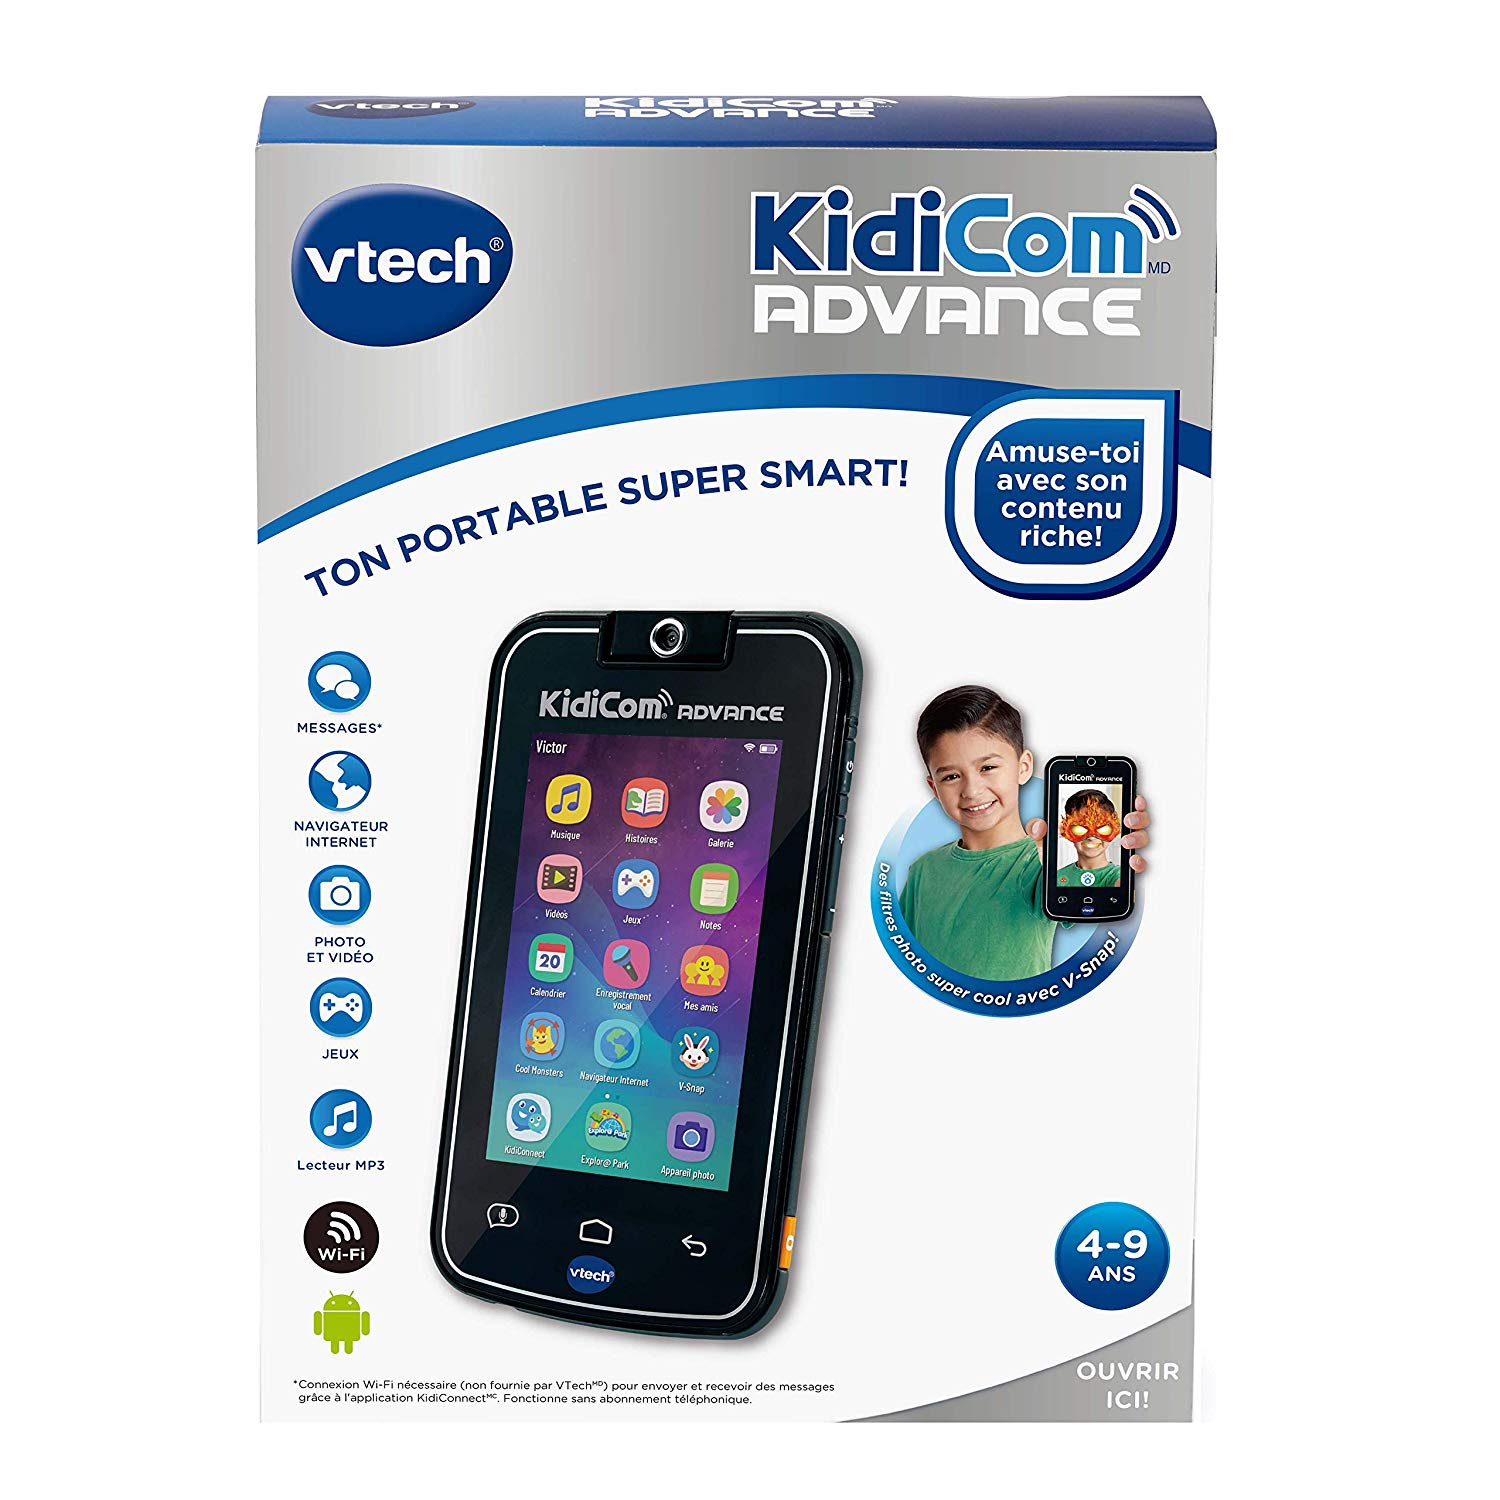 Kidicom advance